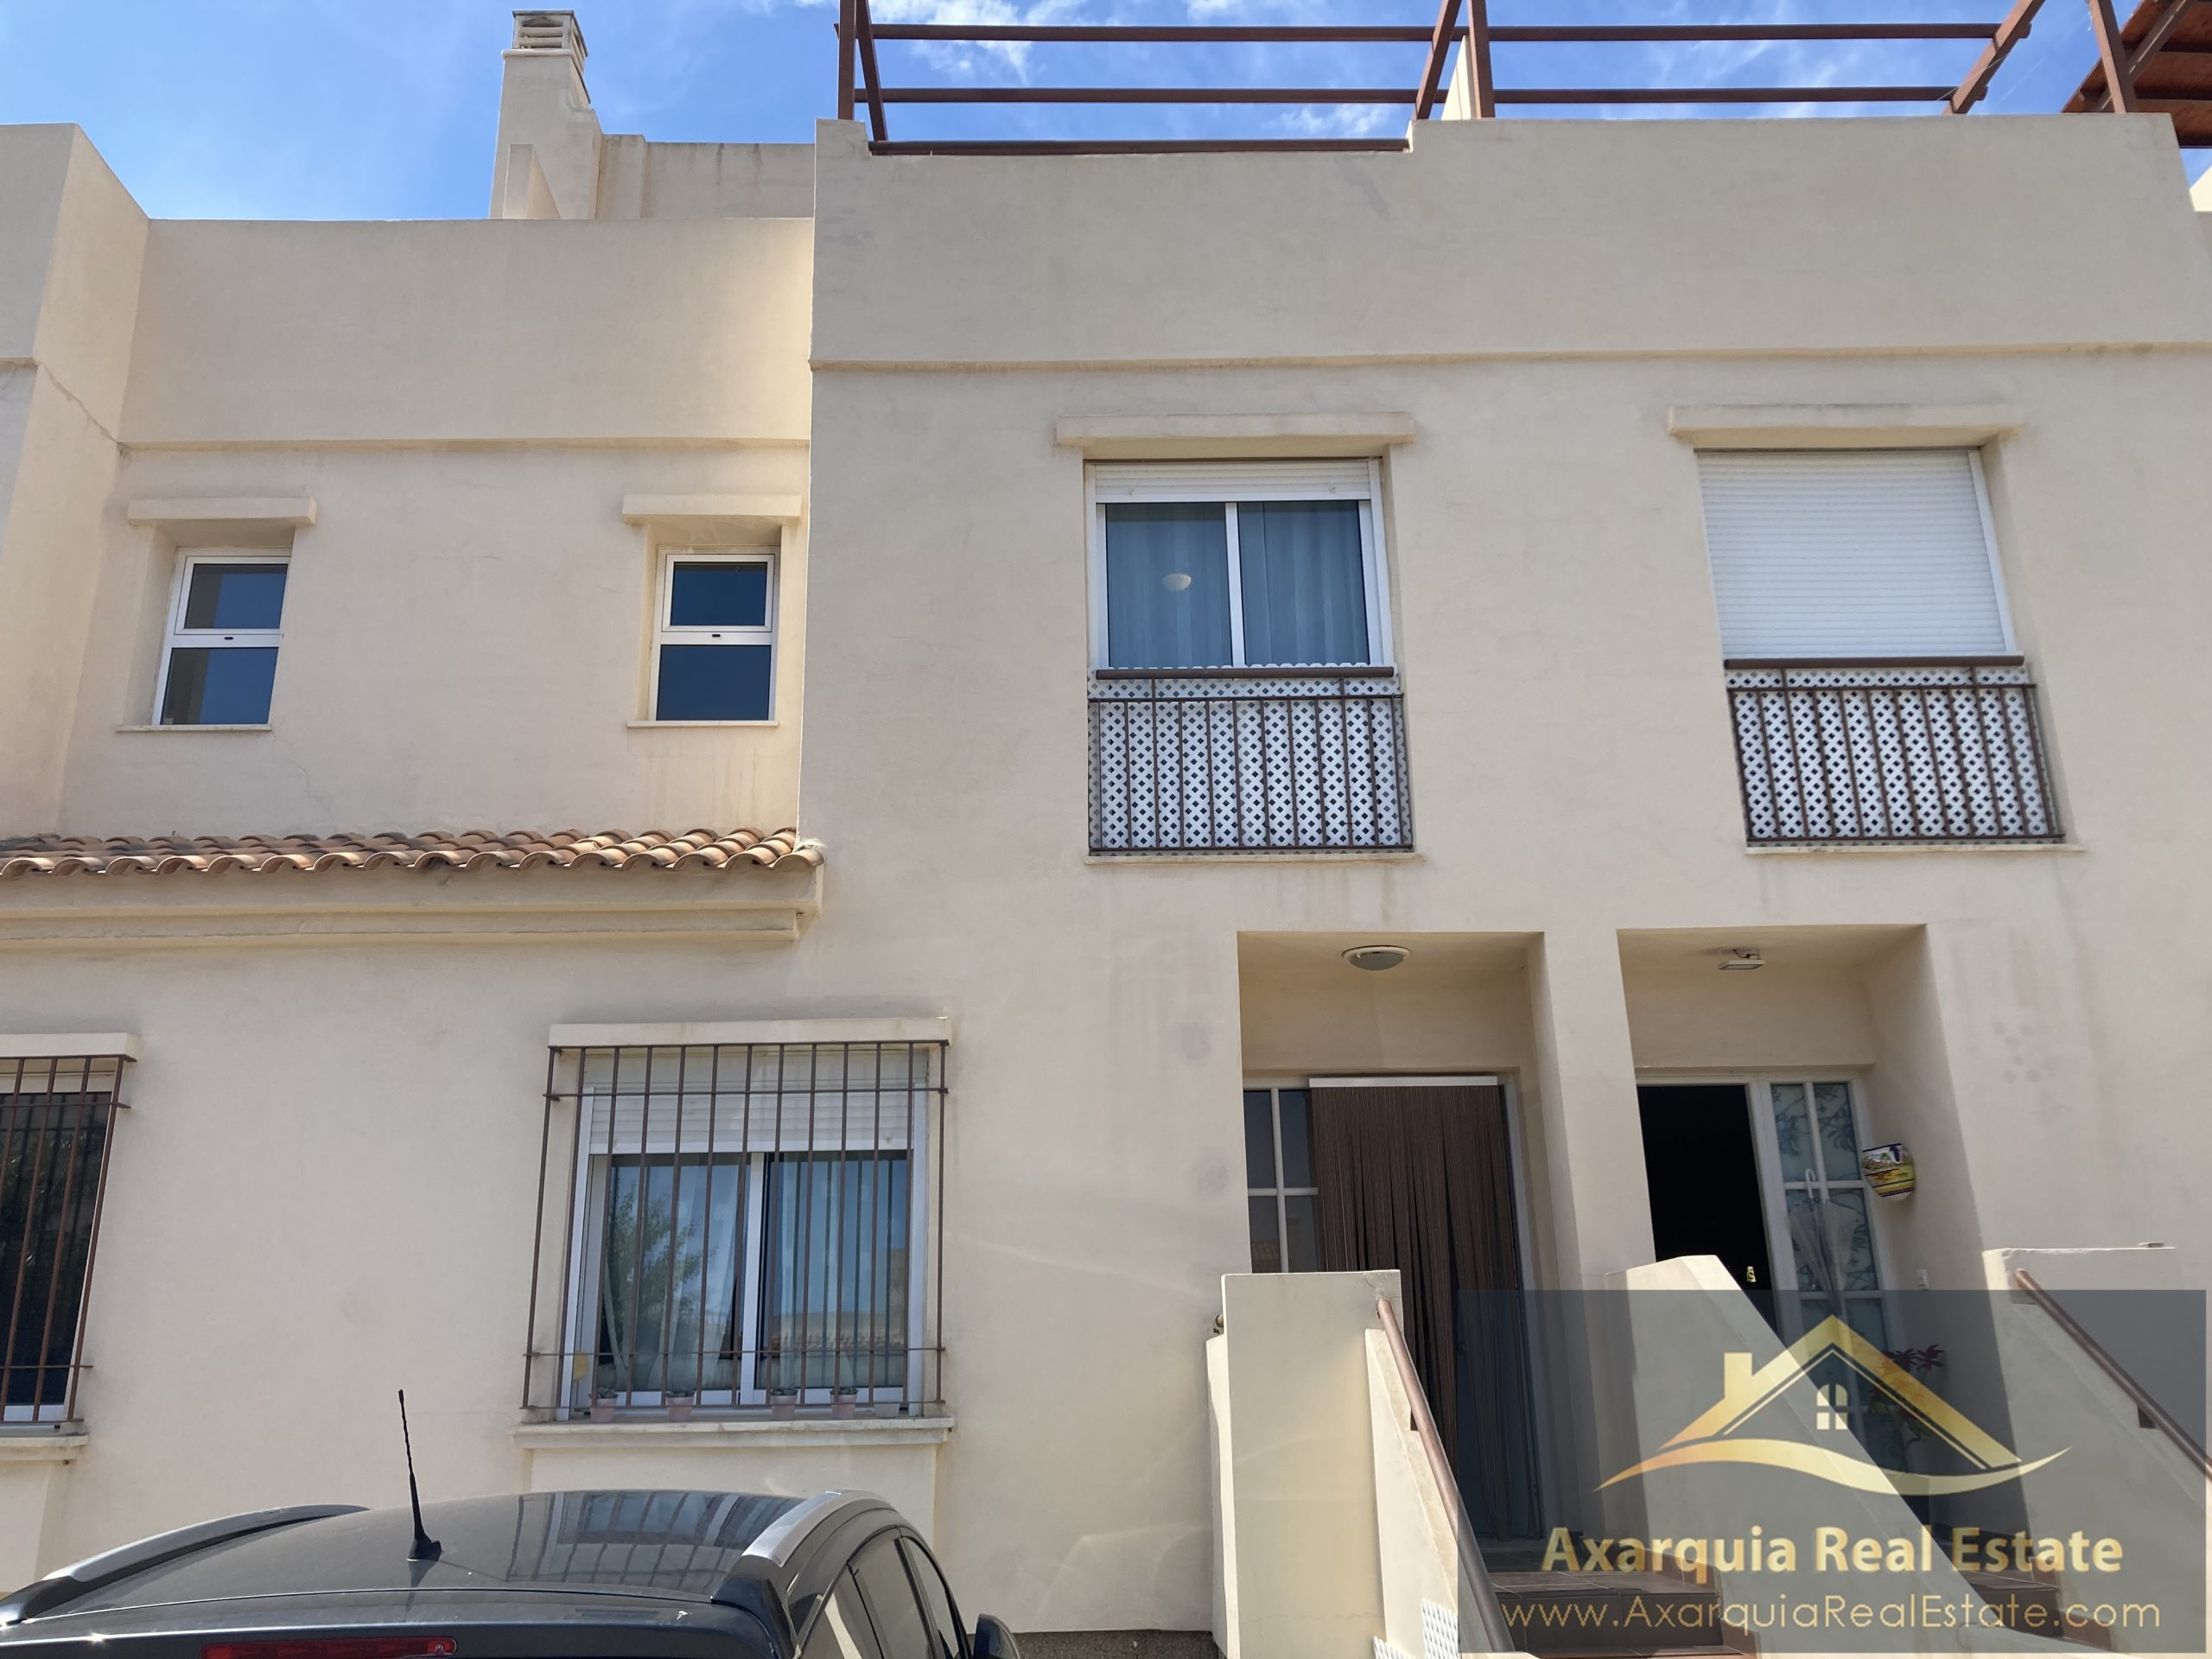 Townhouse in Valle Niza with views of the Mediterranean sea.